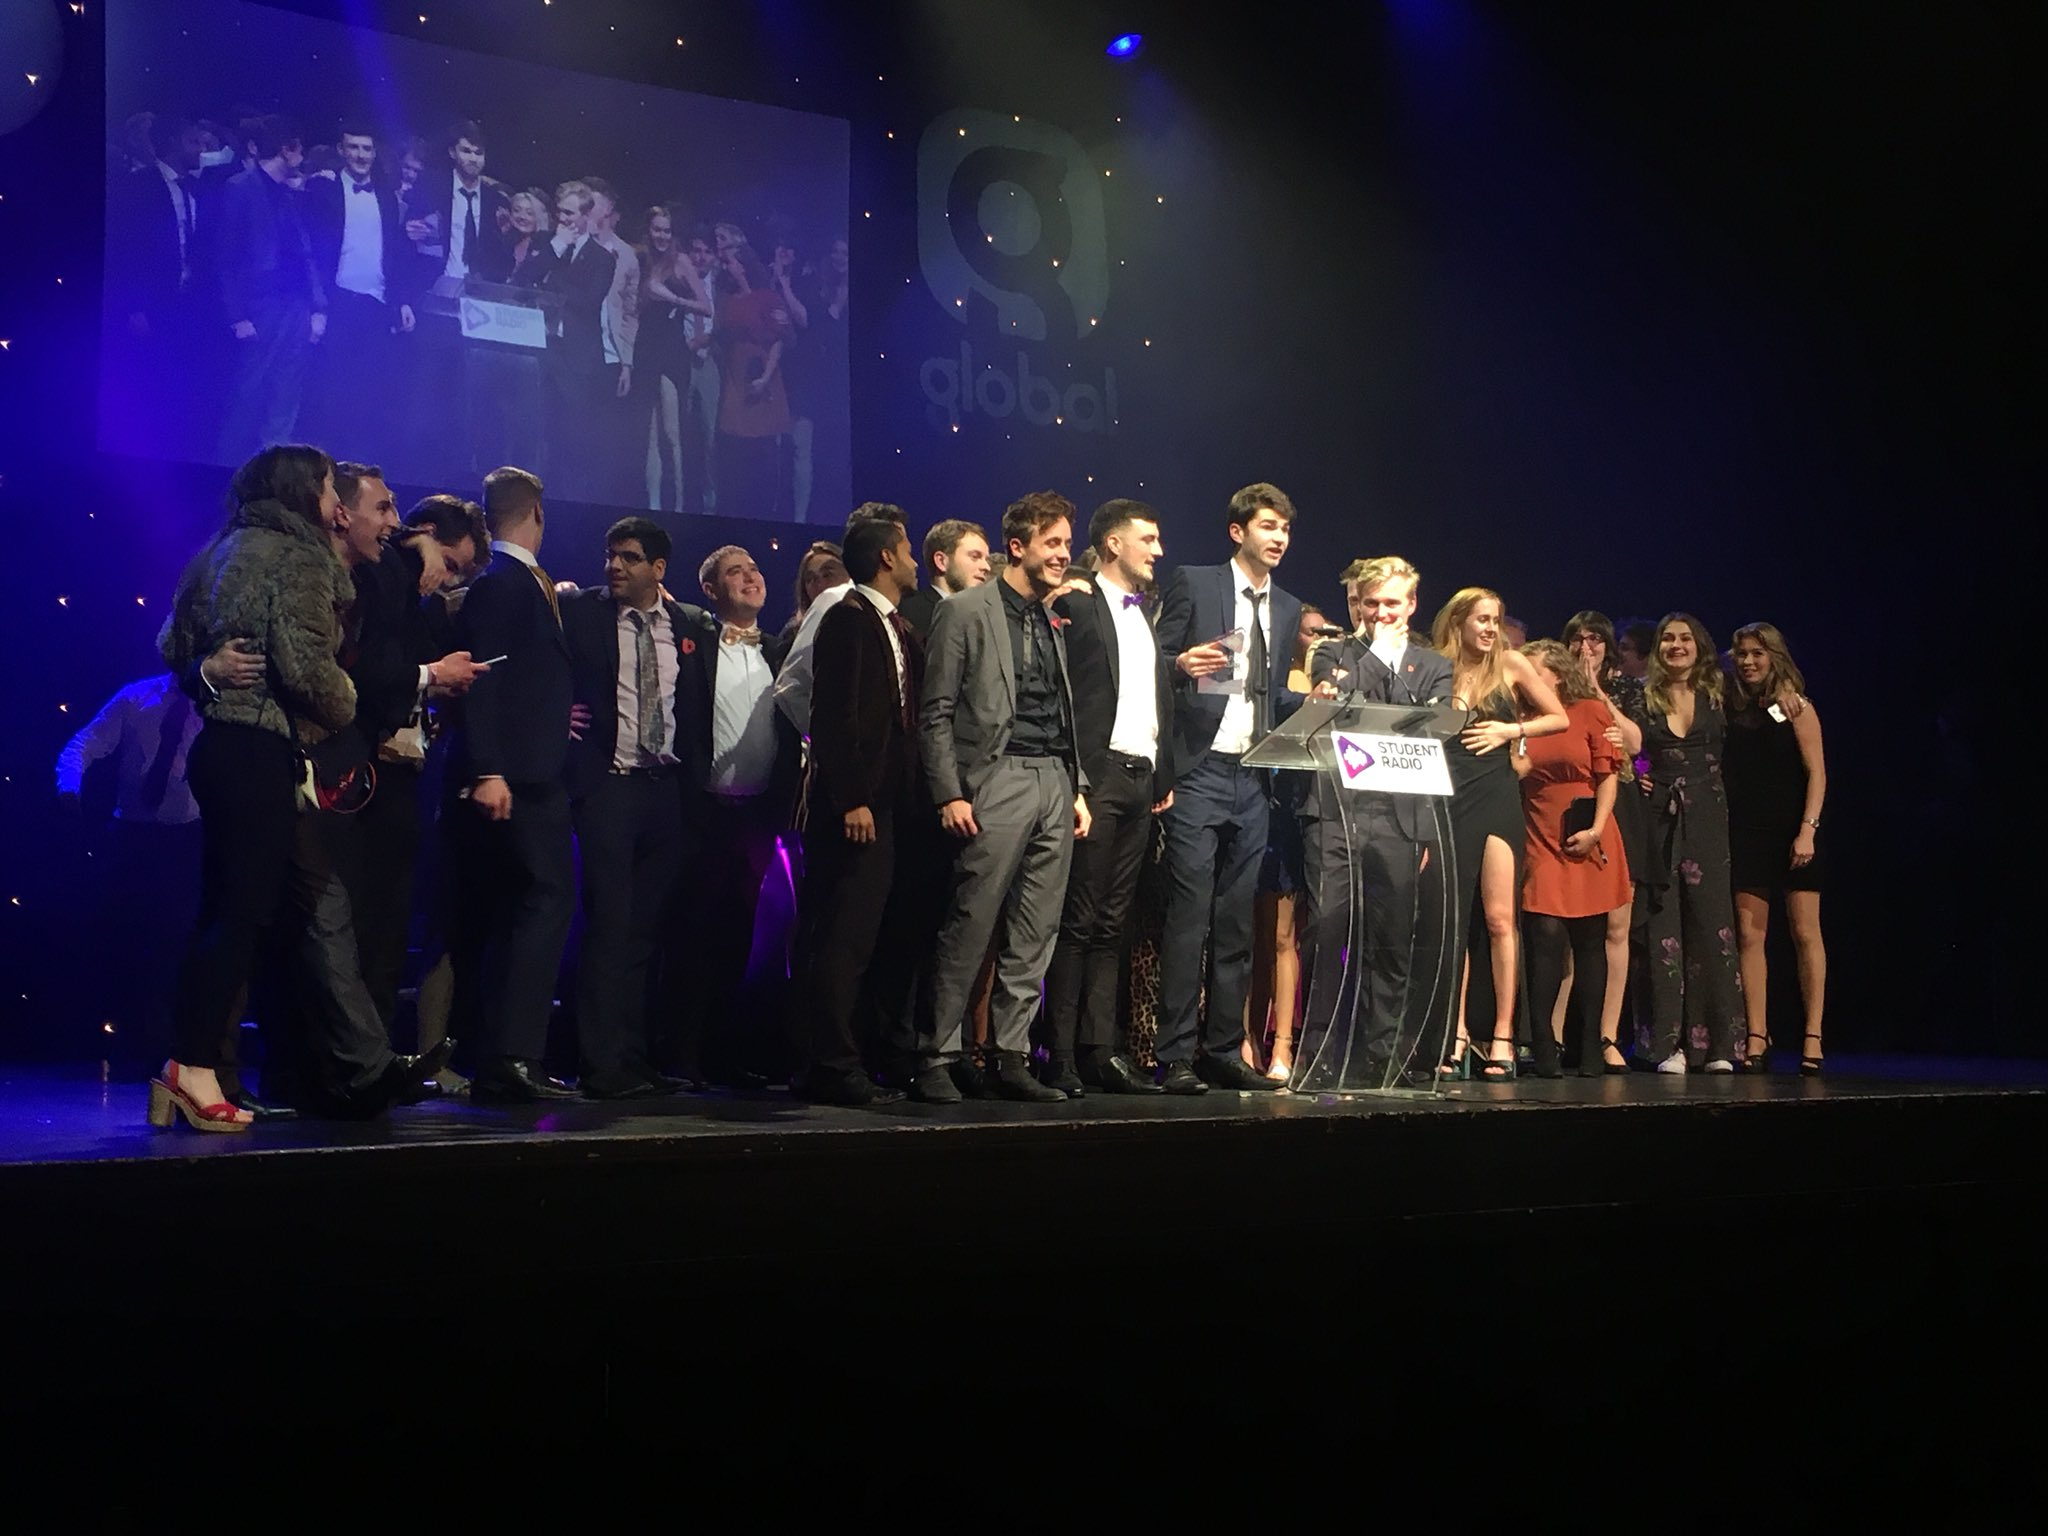 Huge congrats to @URN1350 from Notts uni, Station of the year #SRA - bossin the night https://t.co/K2nt49vXLL